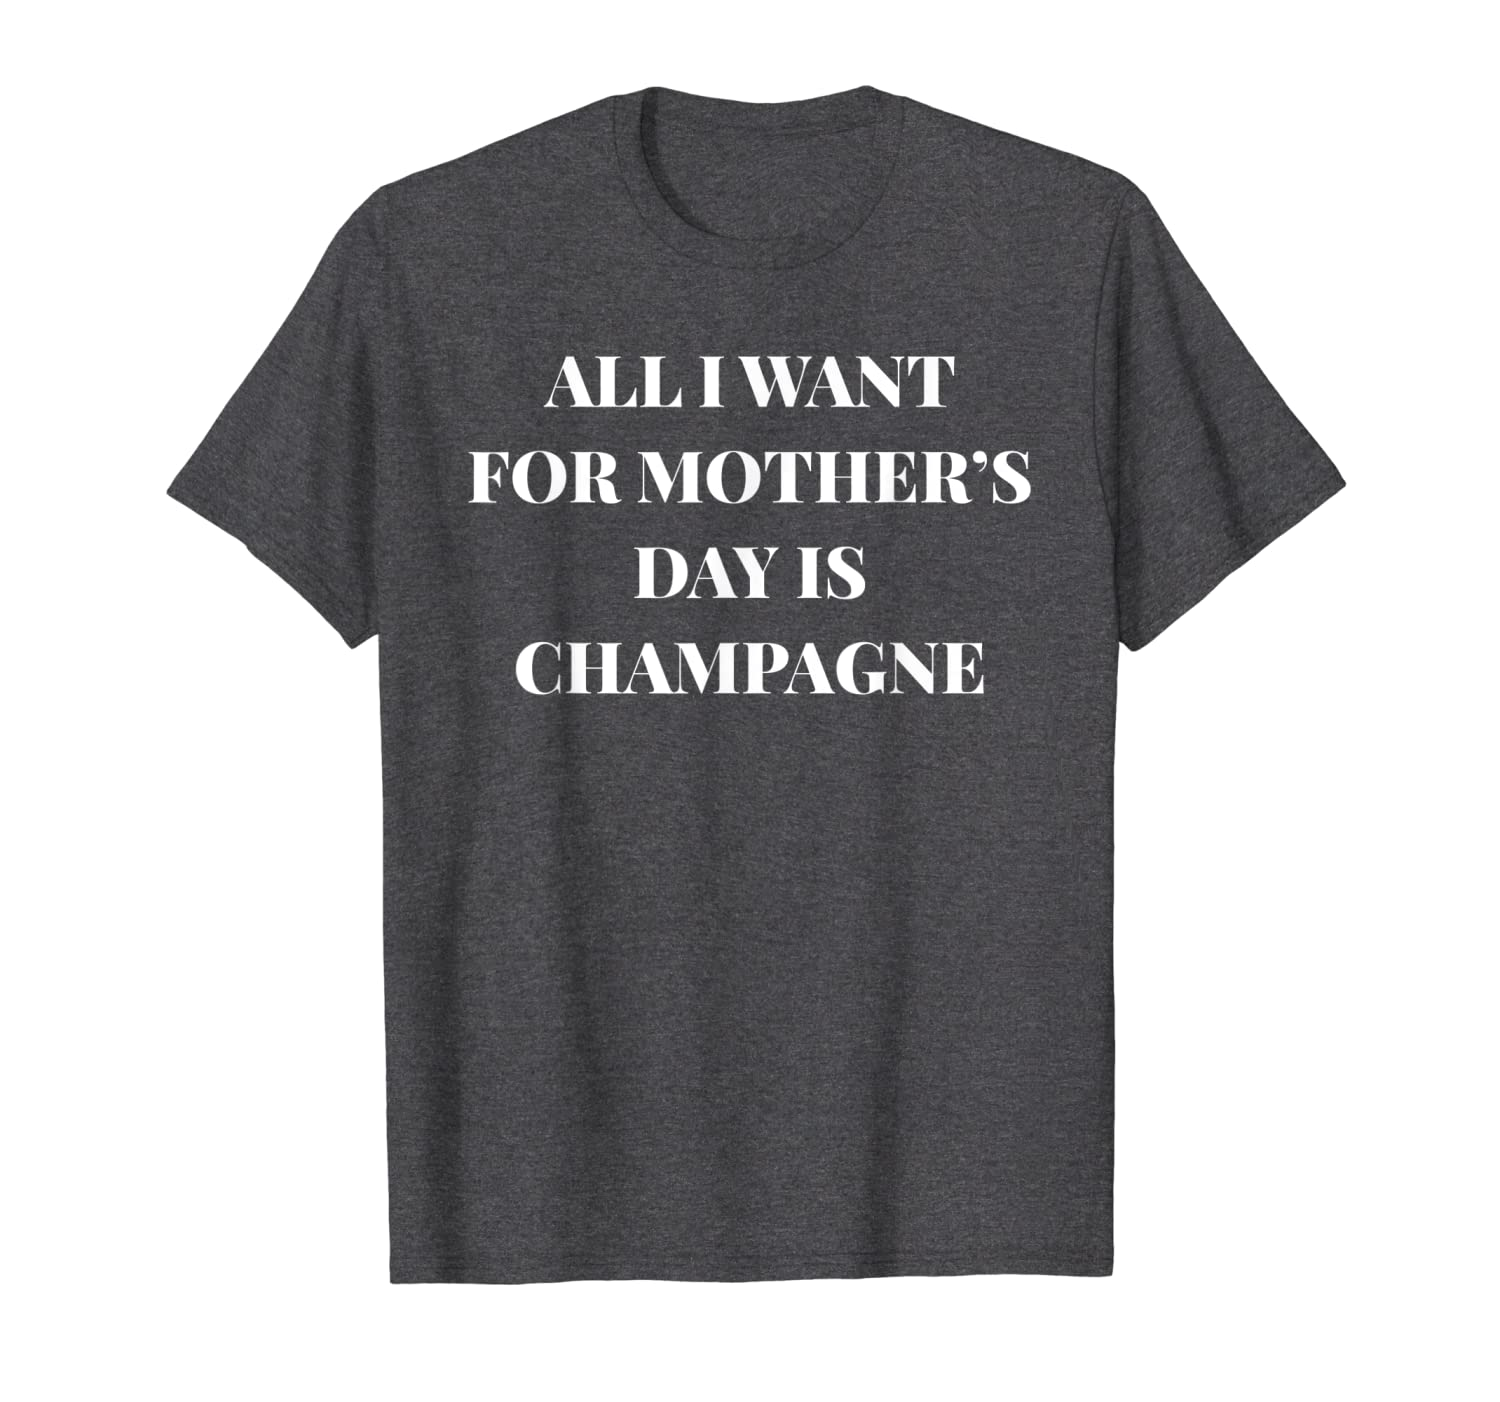 78d9d37e63 Amazon.com: All I Want for Mother's Day is Champagne Funny Shirt: Clothing